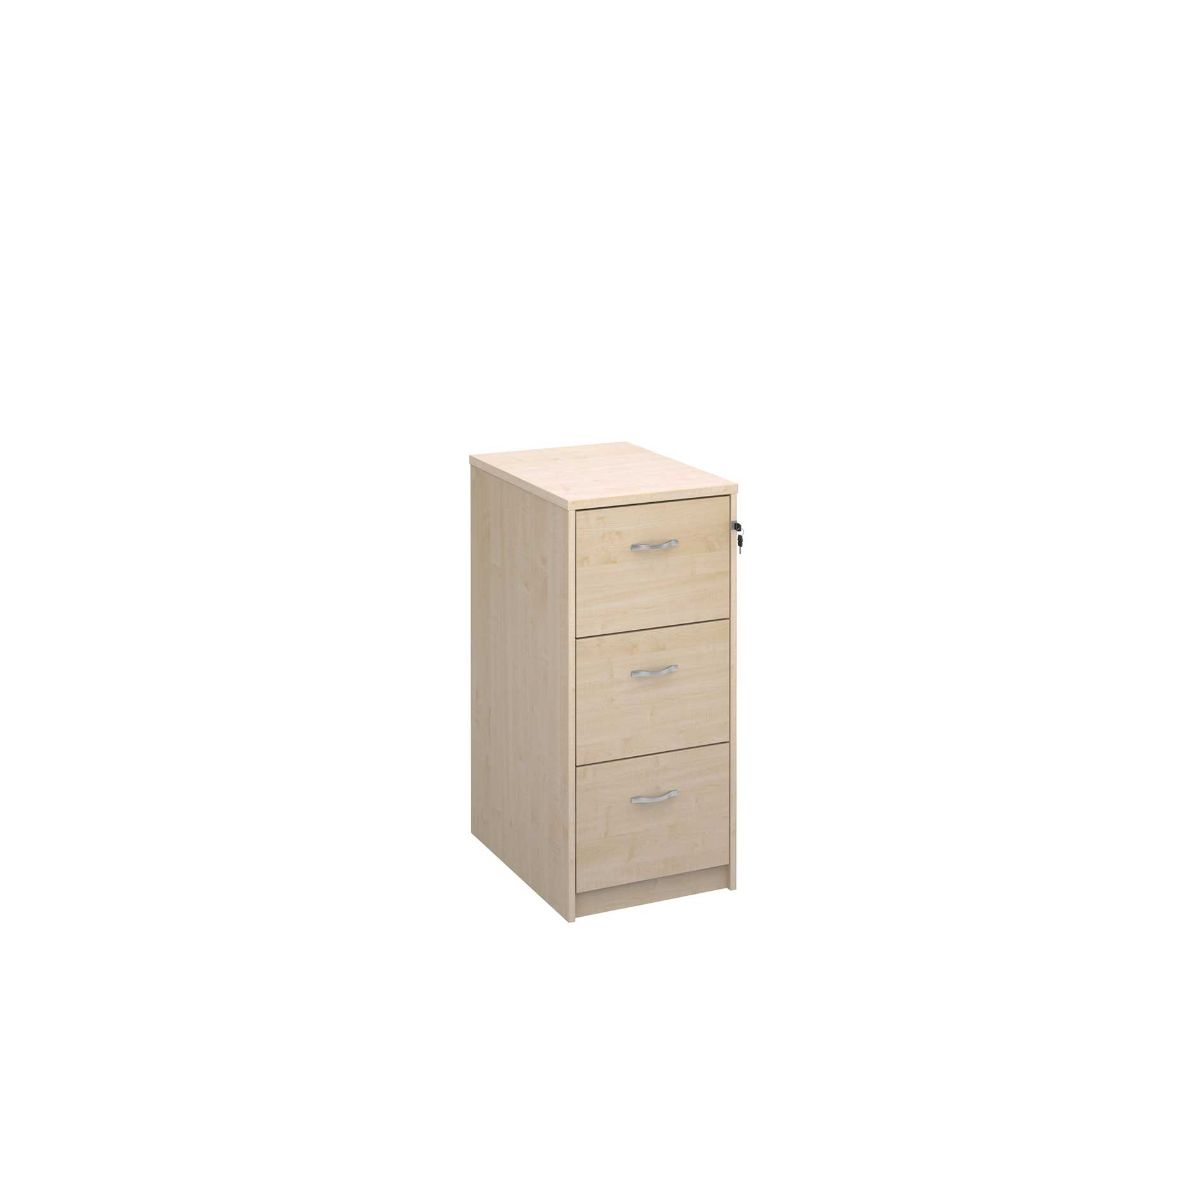 Deluxe Executive Three Drawer Filing Cabinet, Maple